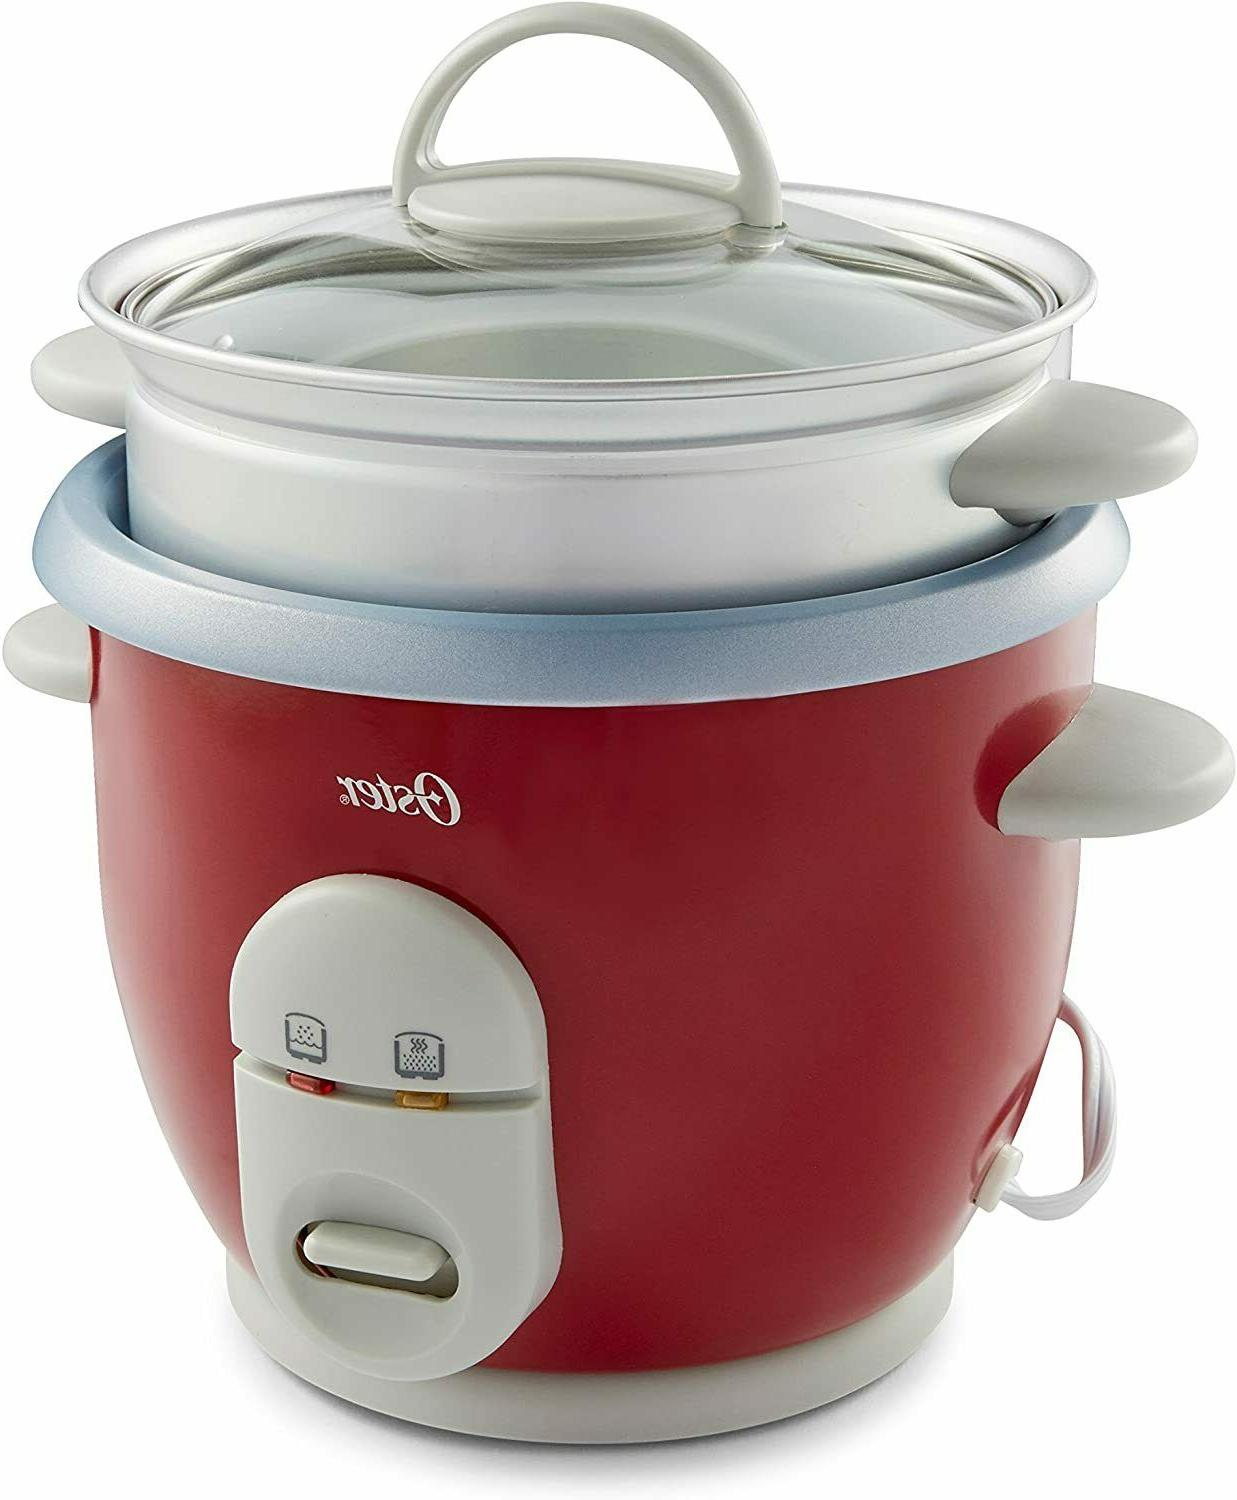 Rice Cooker 6 Oster Non Pot Warmer Electric Red